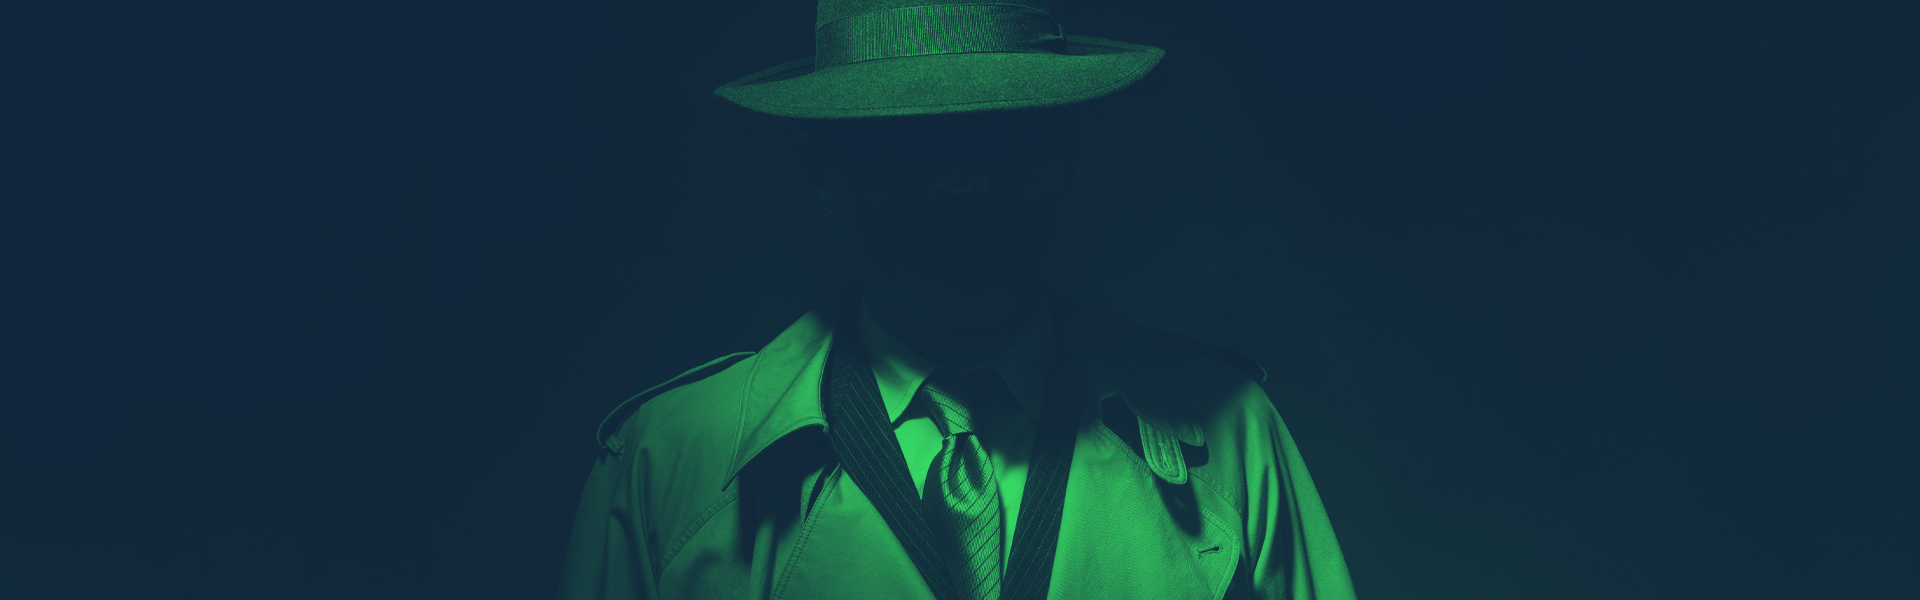 a mysterious person wearing a long coat and fedora hides in a shadow